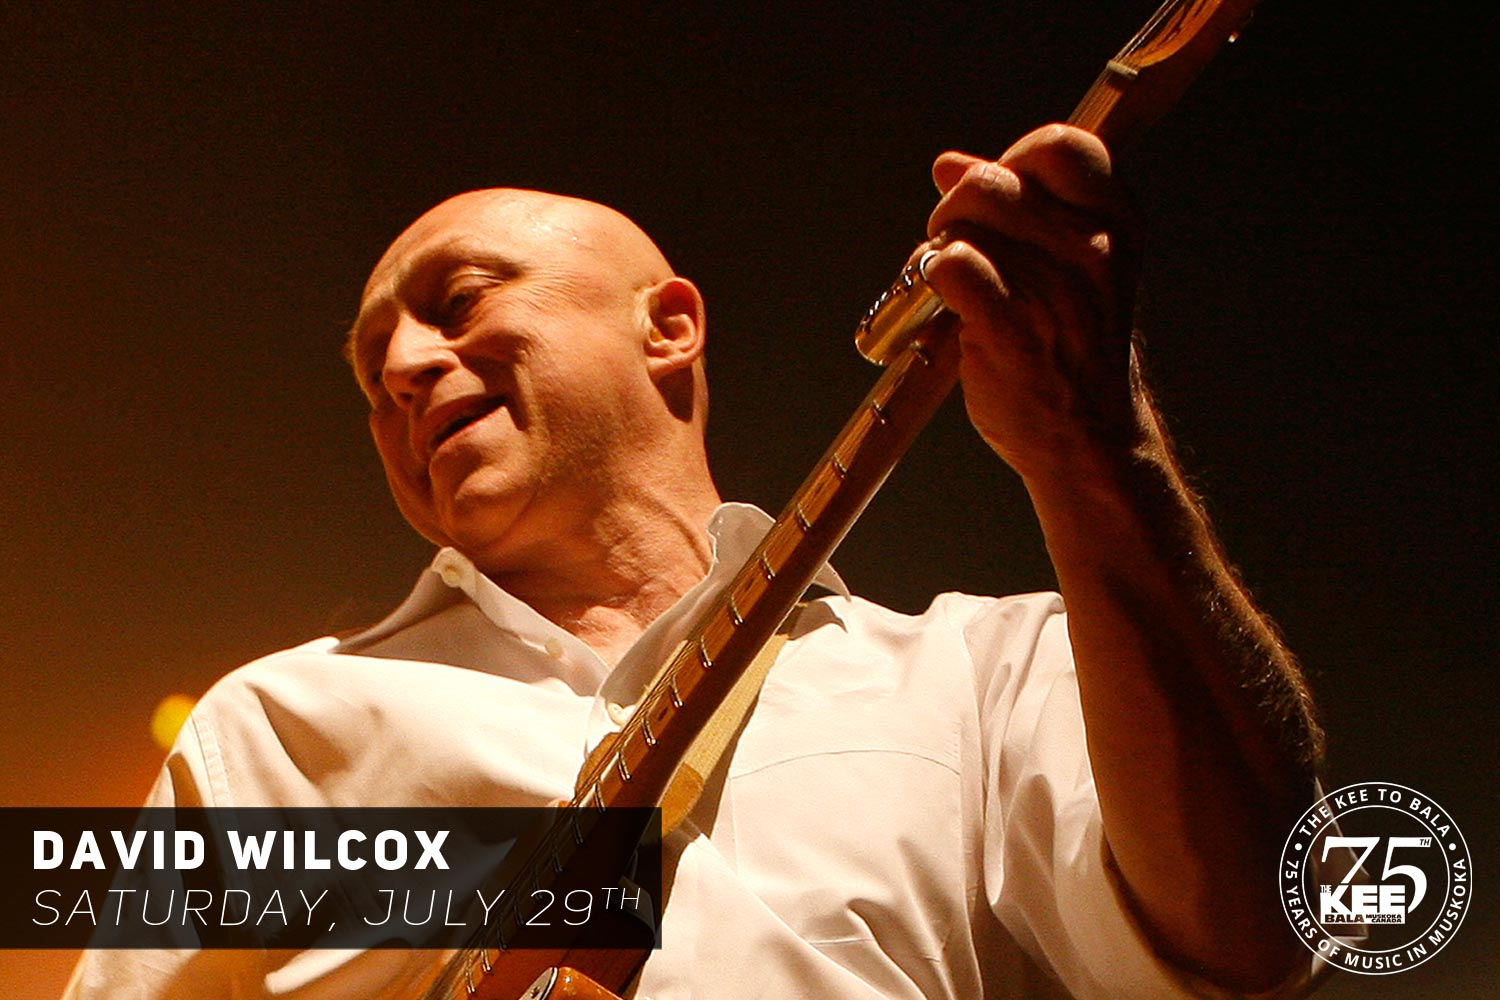 David Wilcox The KEE to Bala